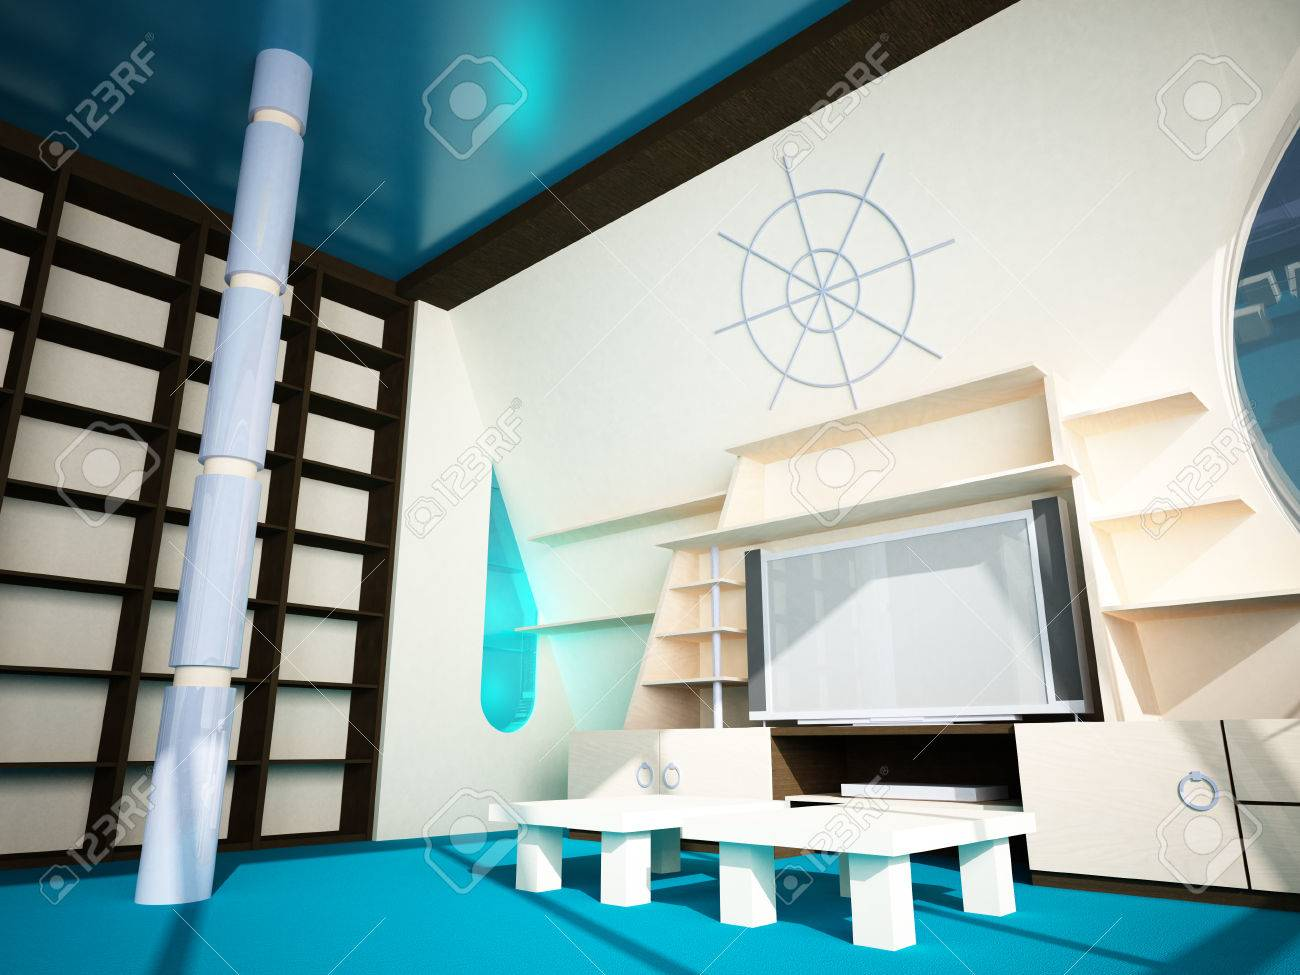 Futuristic interior in modern style of the penthouse  Penthouse with a window in the wall Stock Photo - 24140206